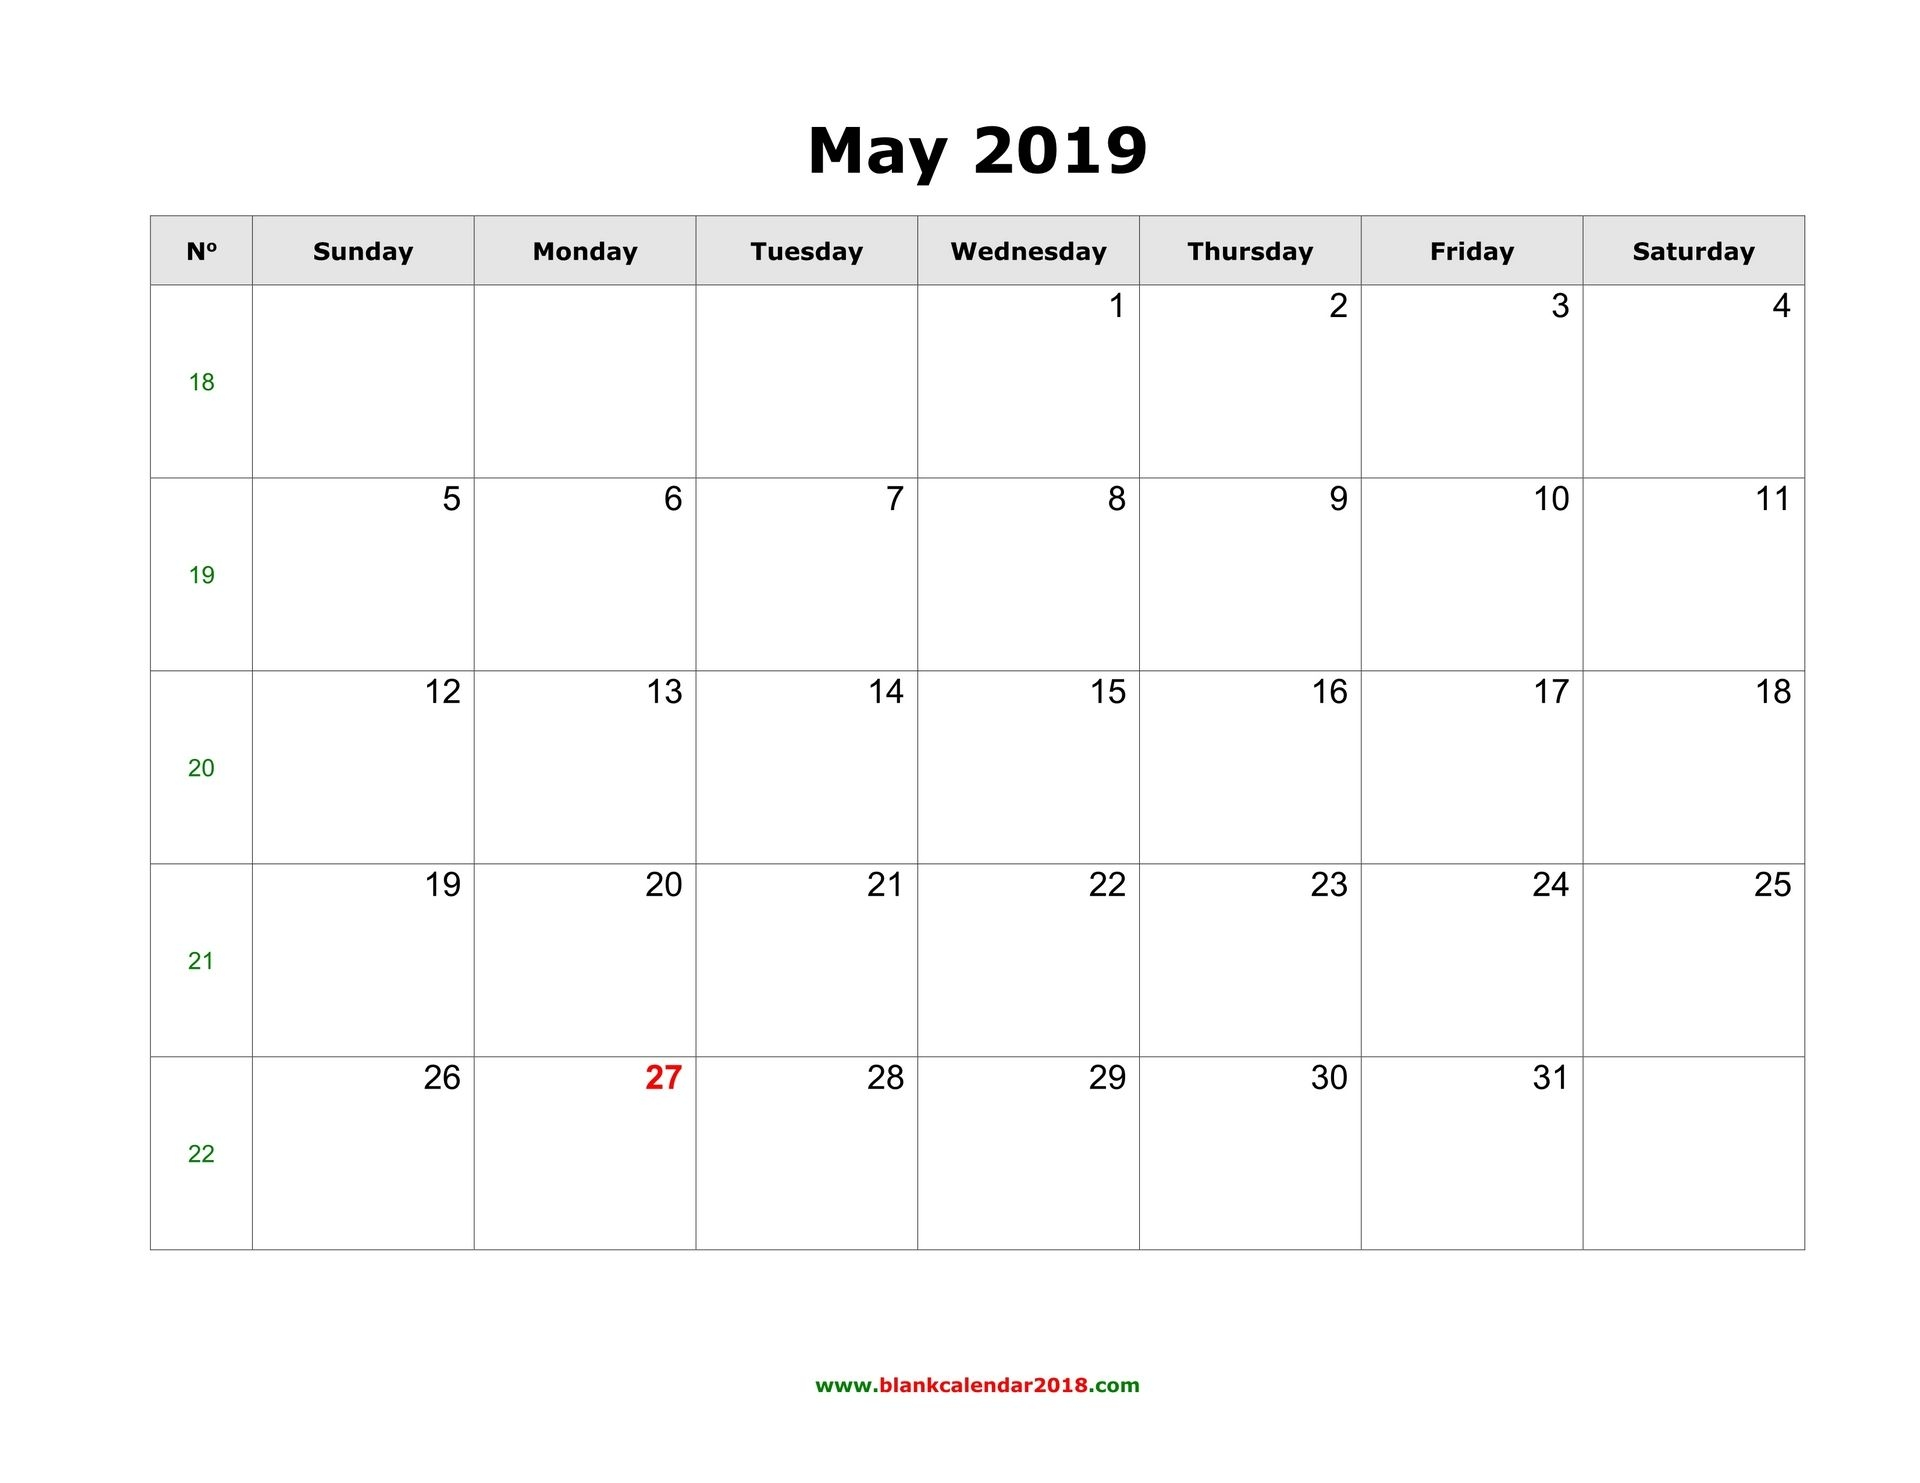 May 2019 Calendar Template Printable Best Style - Printable